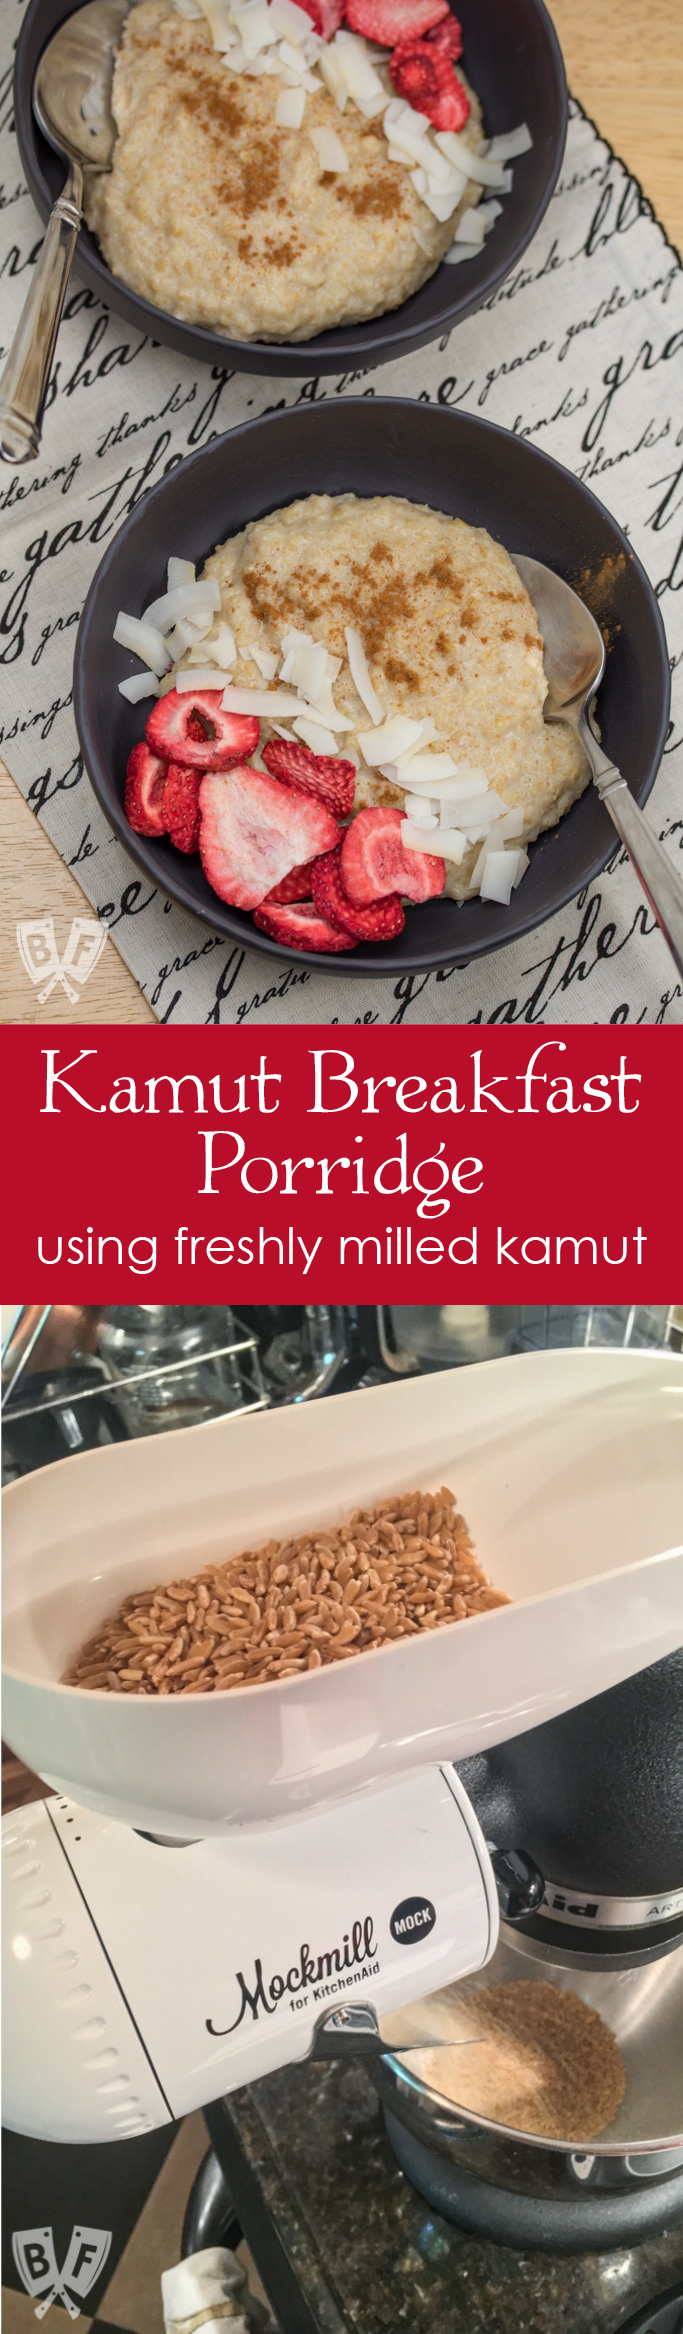 Kamut Breakfast Porridge: Freshly milled grain adds a whole new dimension + loads of nutrition to this simple breakfast cereal. Plus a review of the Mockmill stand mixer attachment. #ad #Mockmill